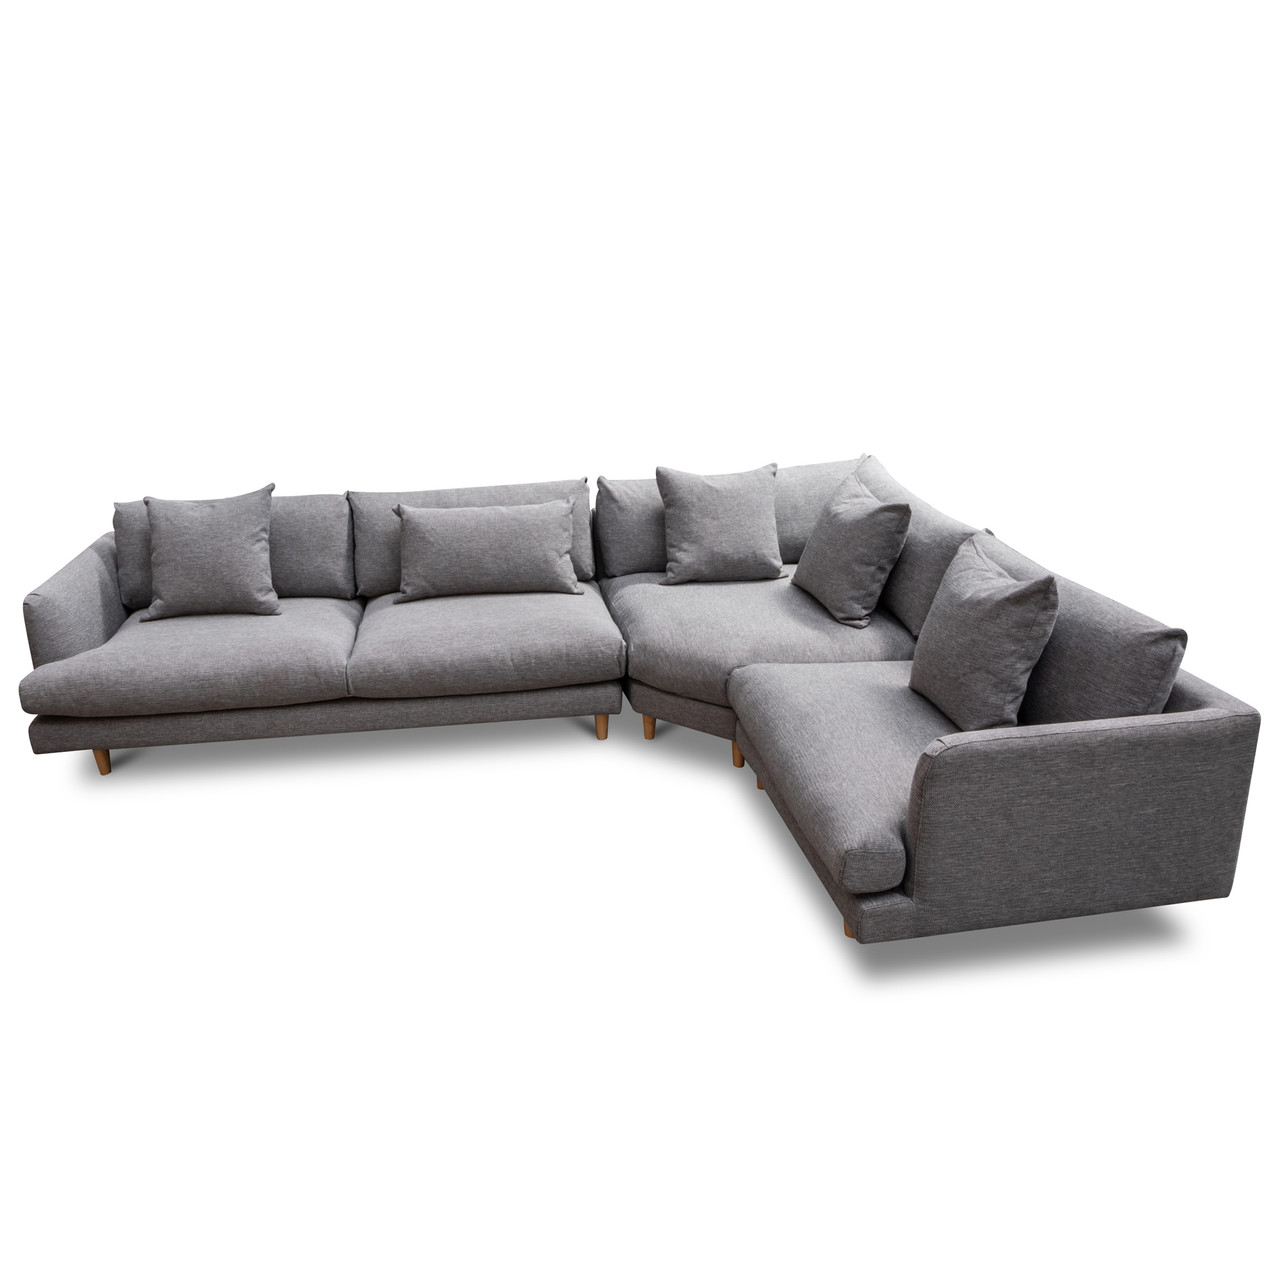 Clc2854 Ca Modular Sofa Graphite Grey Cf Milano Republic Furniture